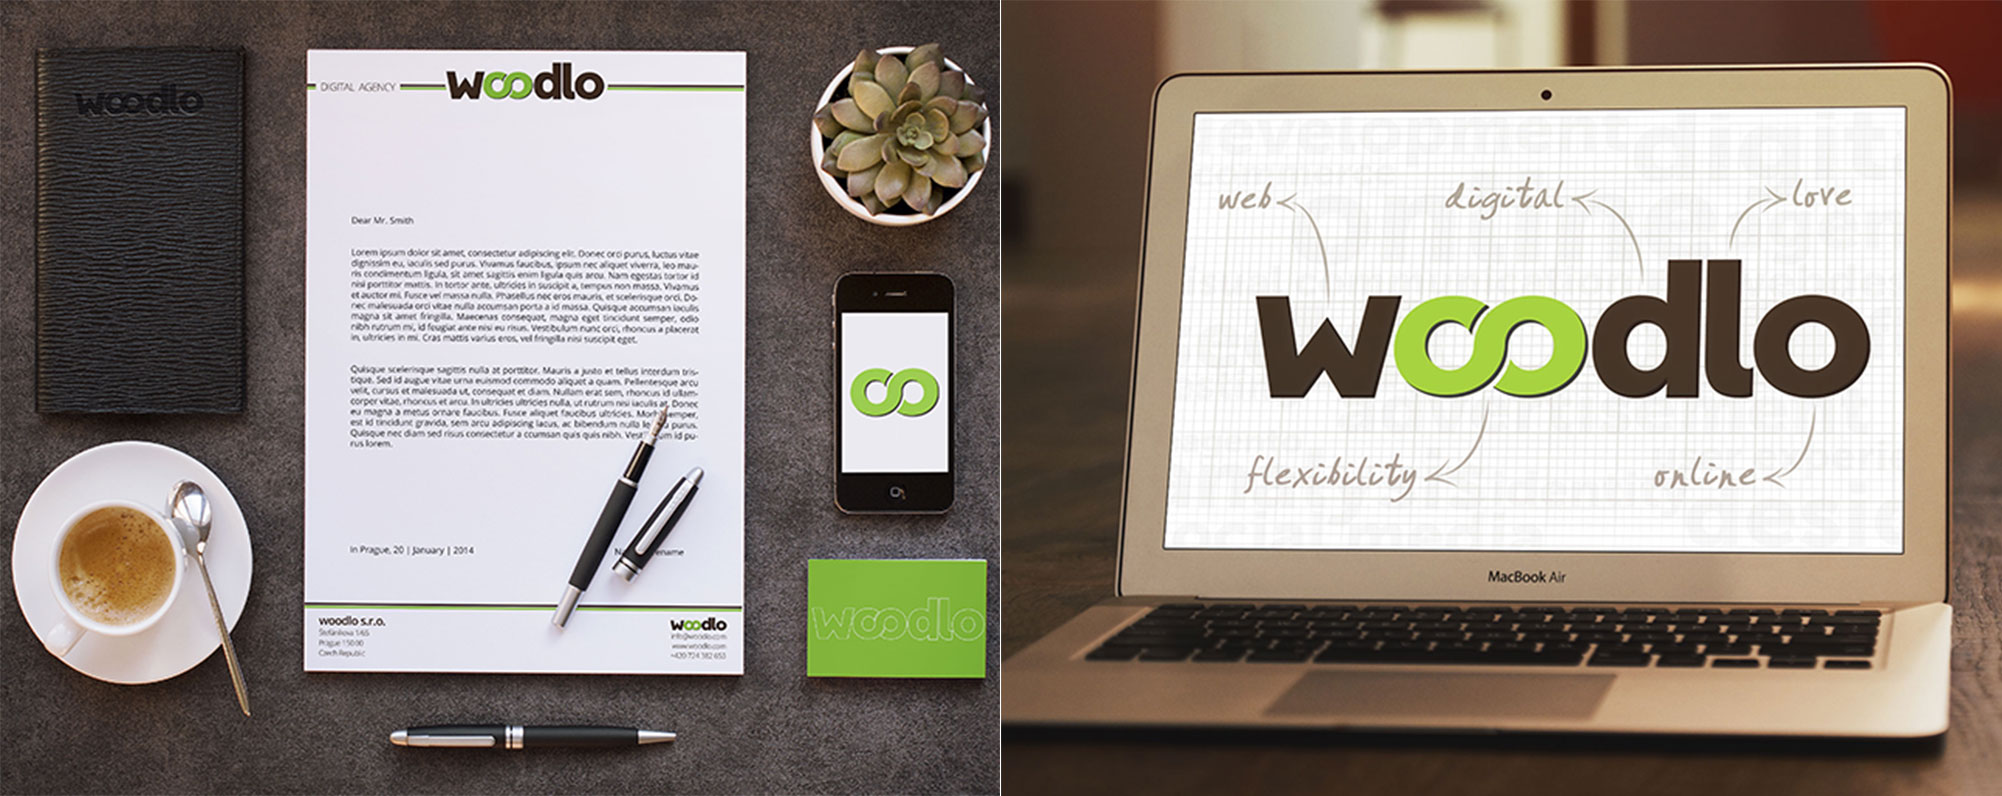 Woodlo Digital Agency